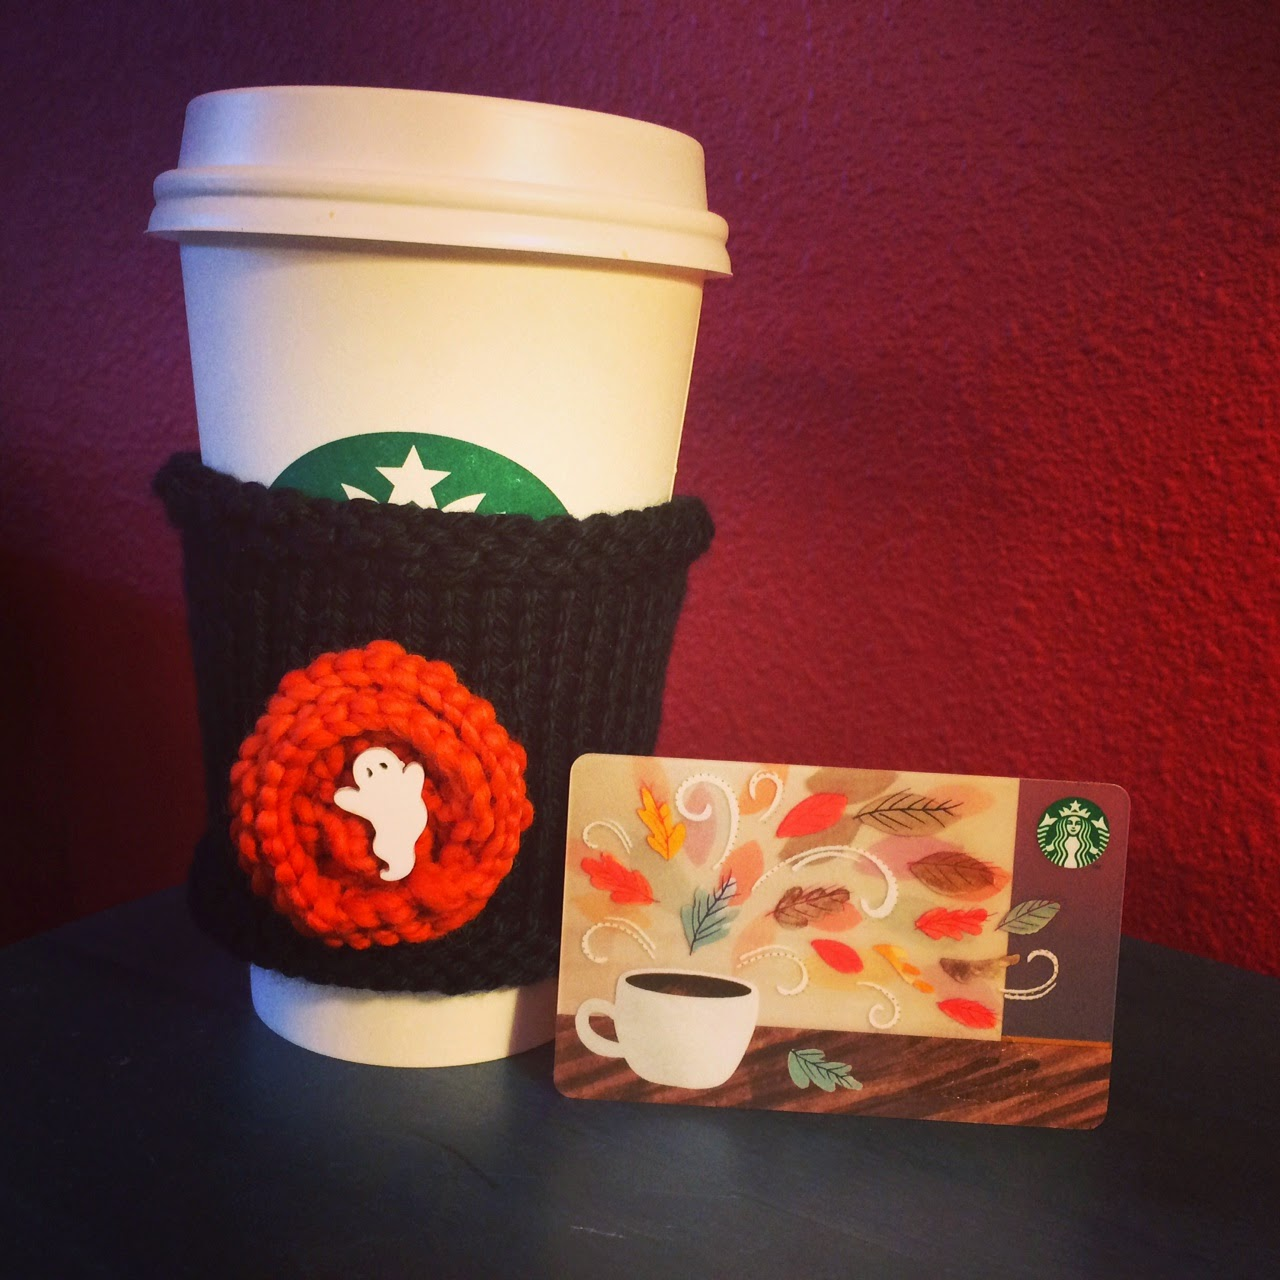 Starbucks Gift Card and Hand Knit Cup Cozy GIVEAWAY!